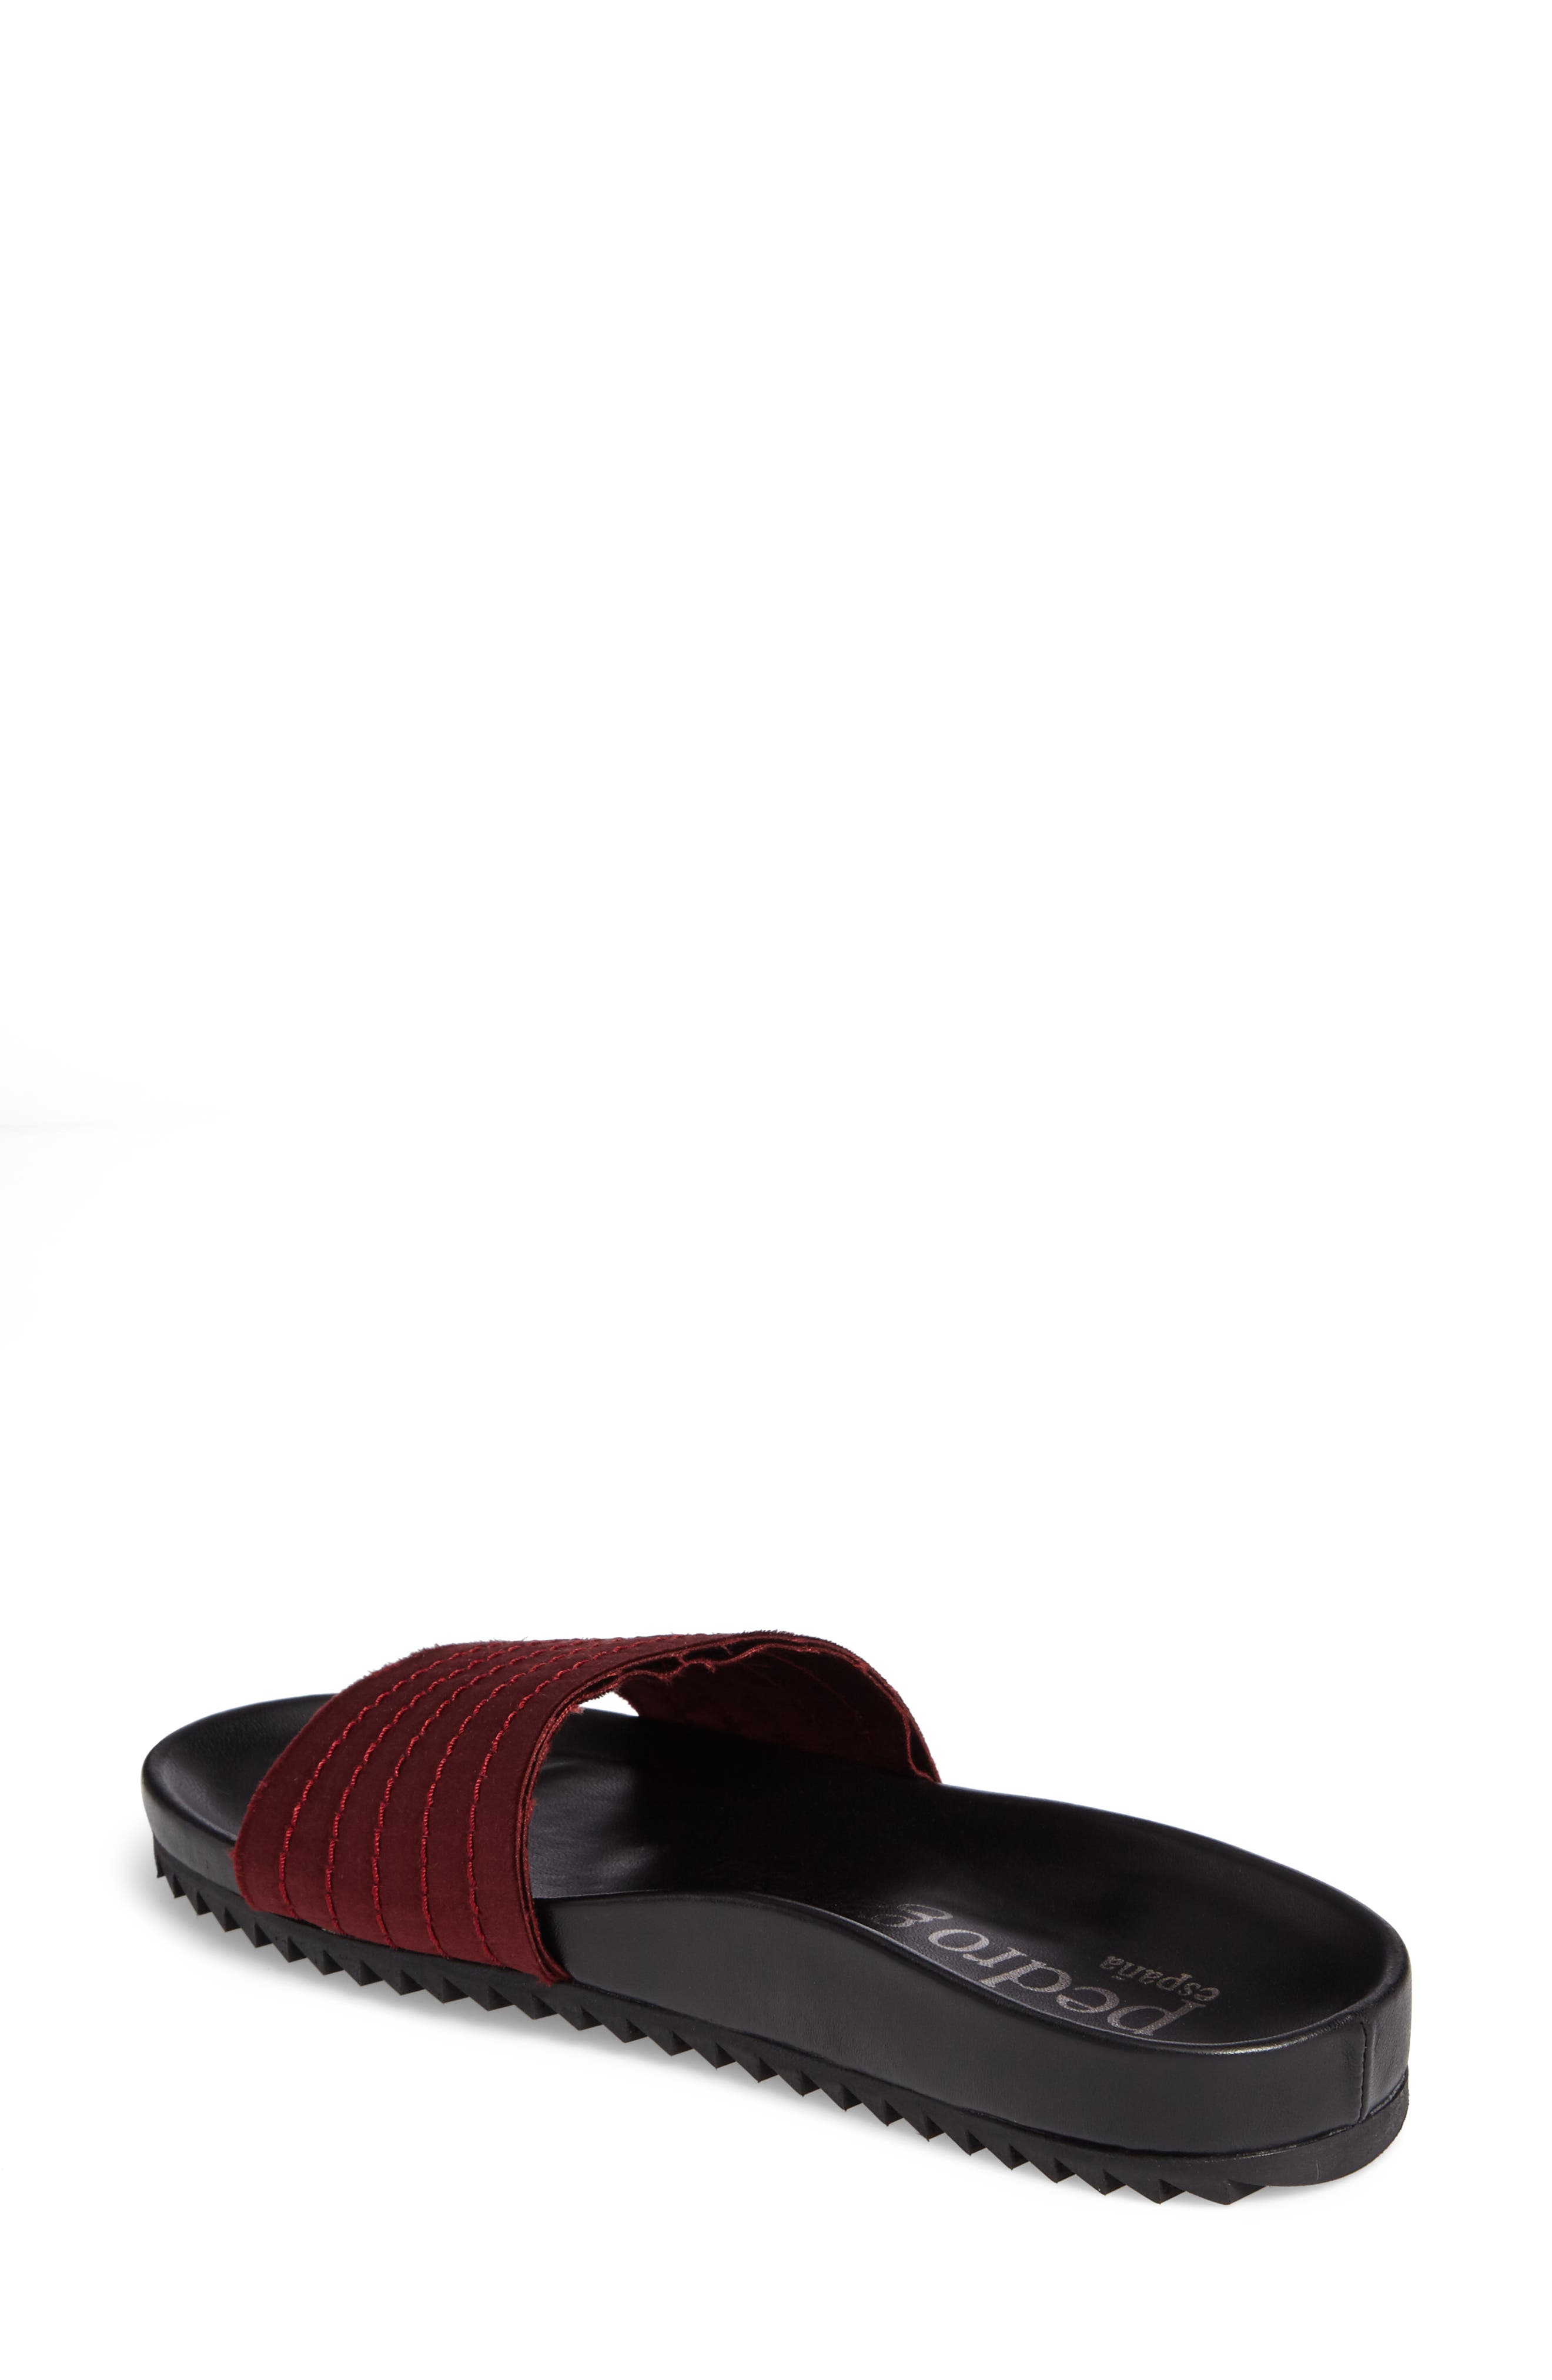 Amparo Slide Sandal,                             Alternate thumbnail 4, color,